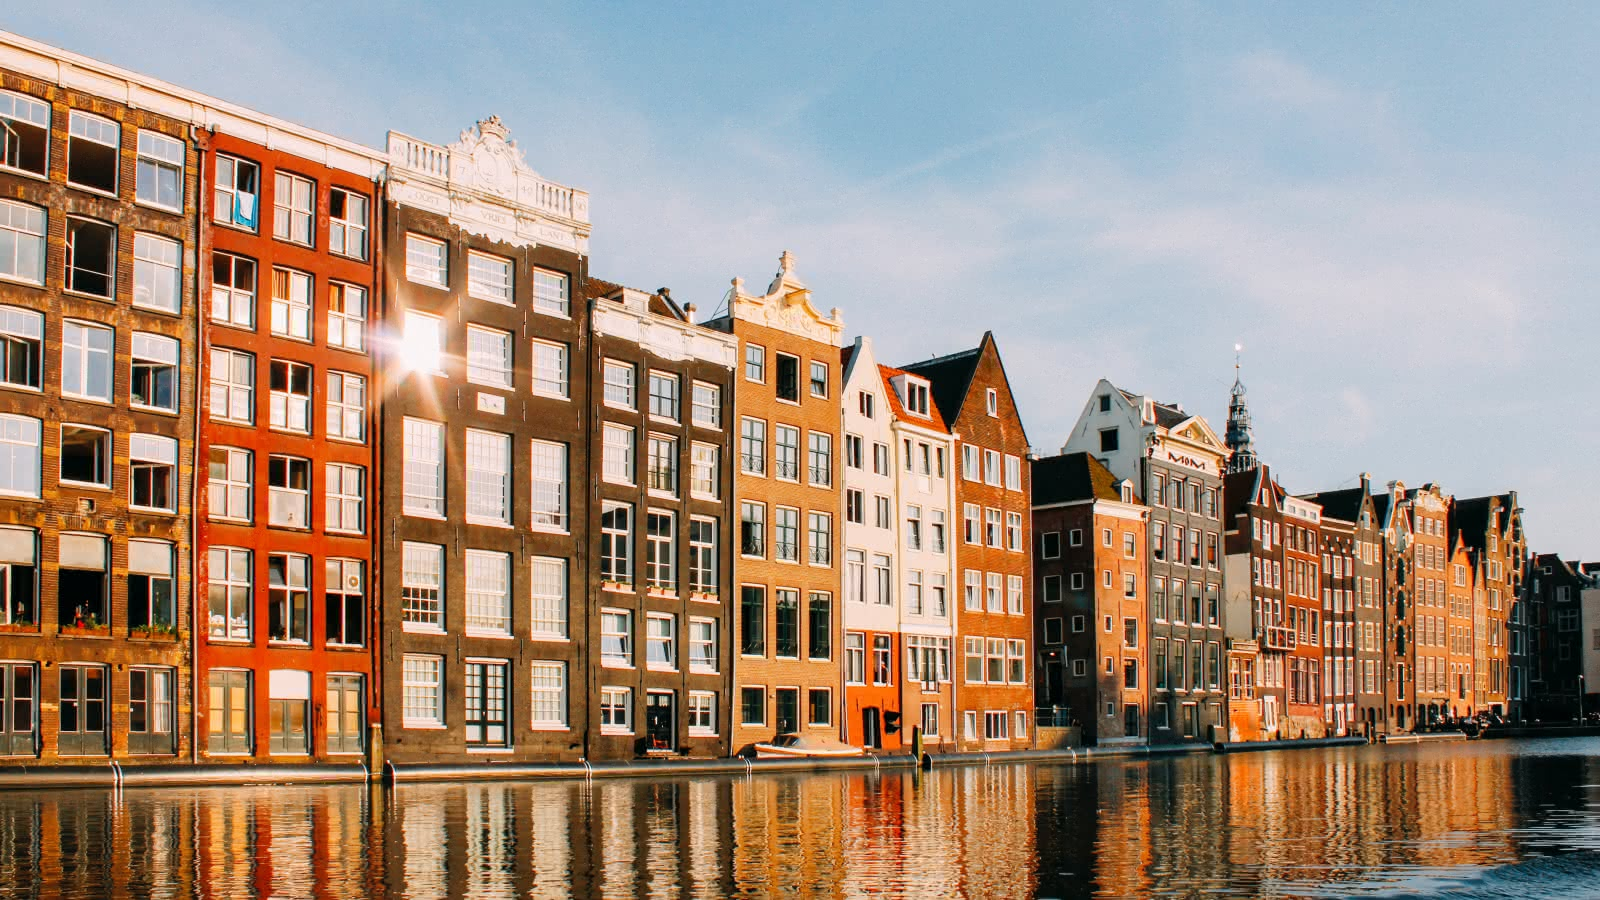 amsterdam's famous canals and bridges during the amsterdam free walking tour